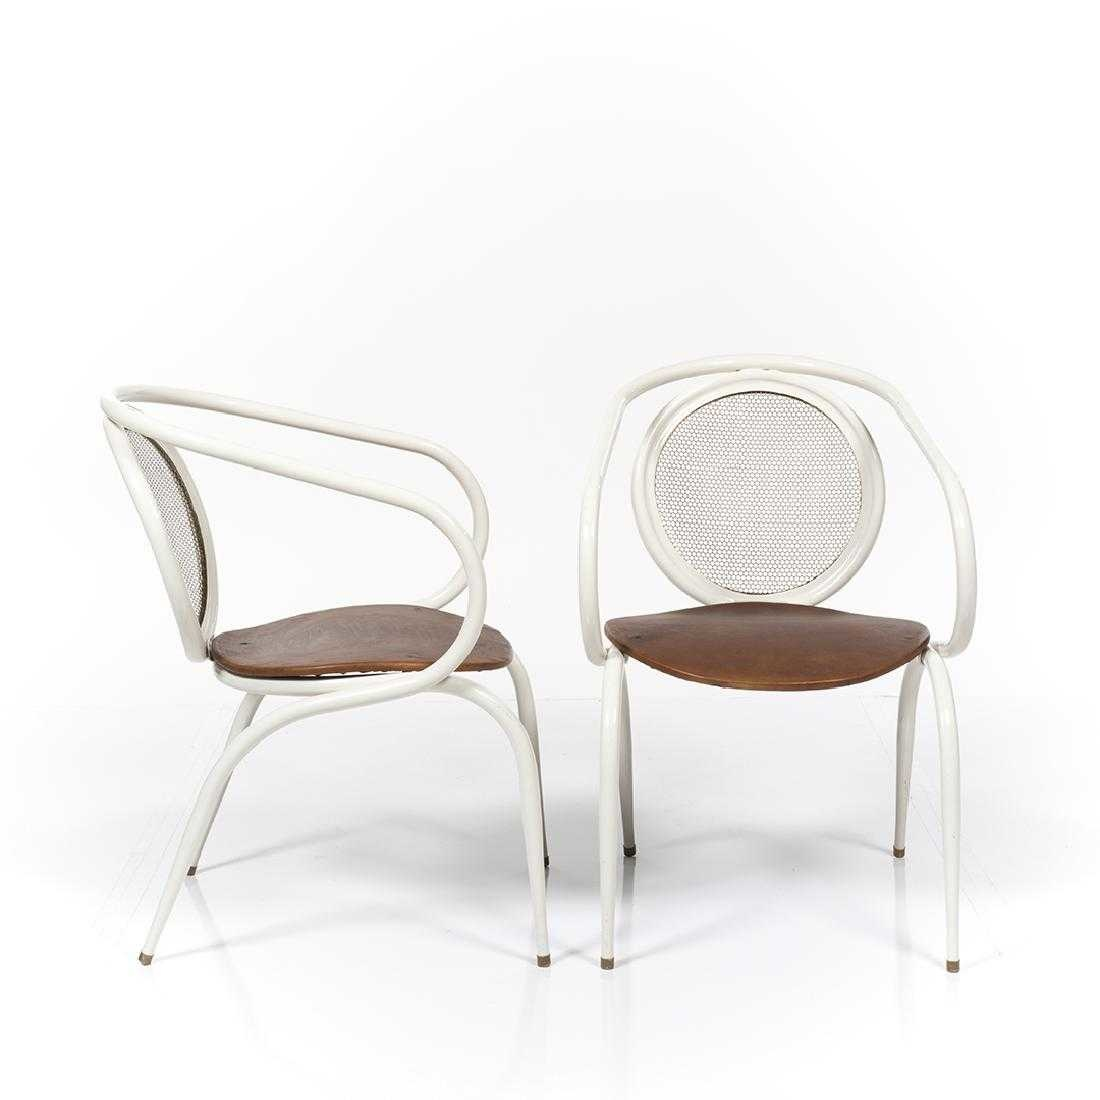 Metal Tubular Armchairs with Leather Seats (Set of 4)